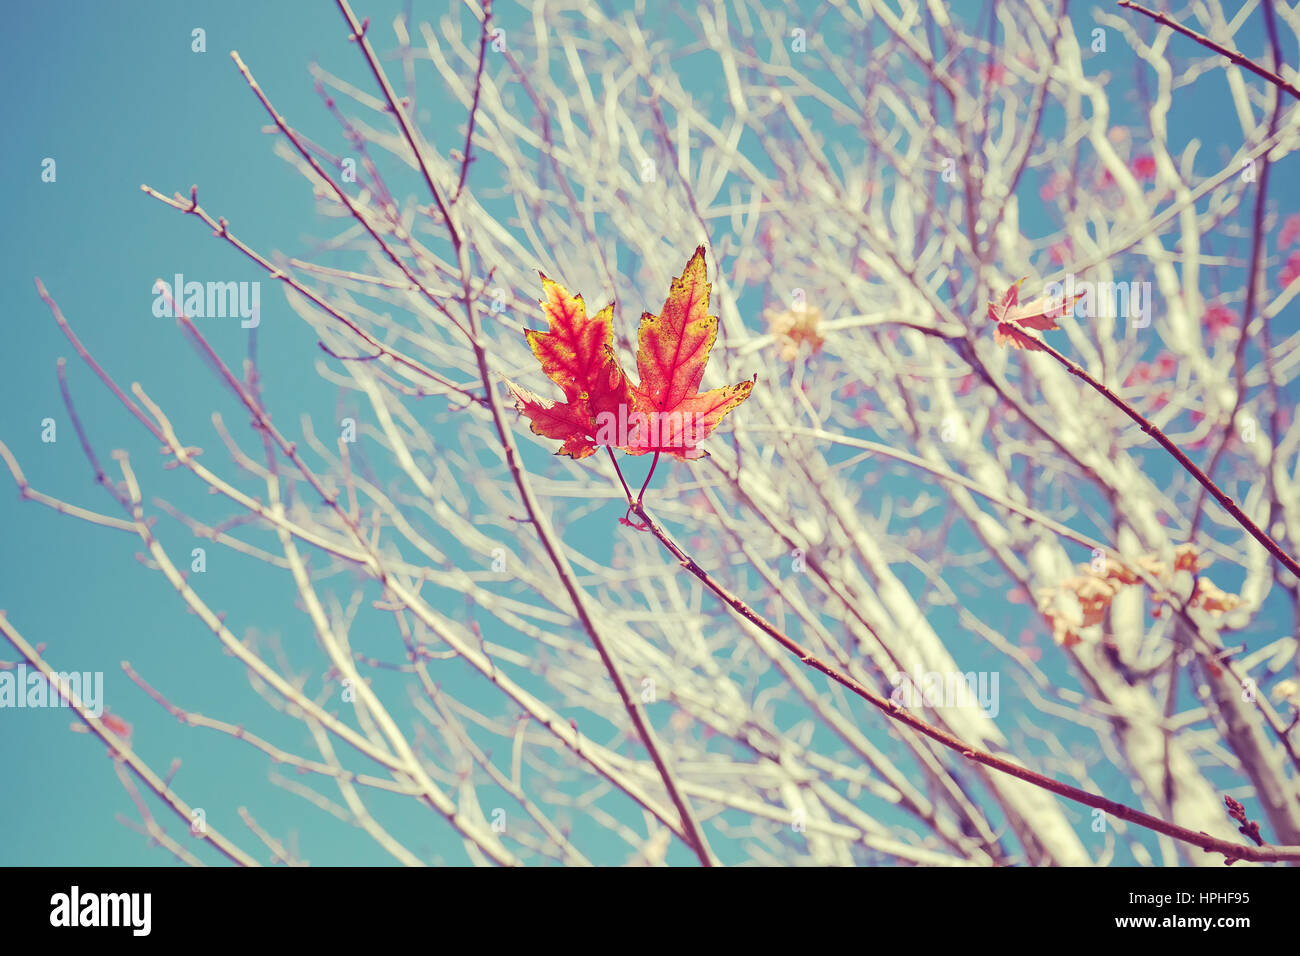 Retro stylized image of last leaves on a tree, selective focus, nature background. - Stock Image